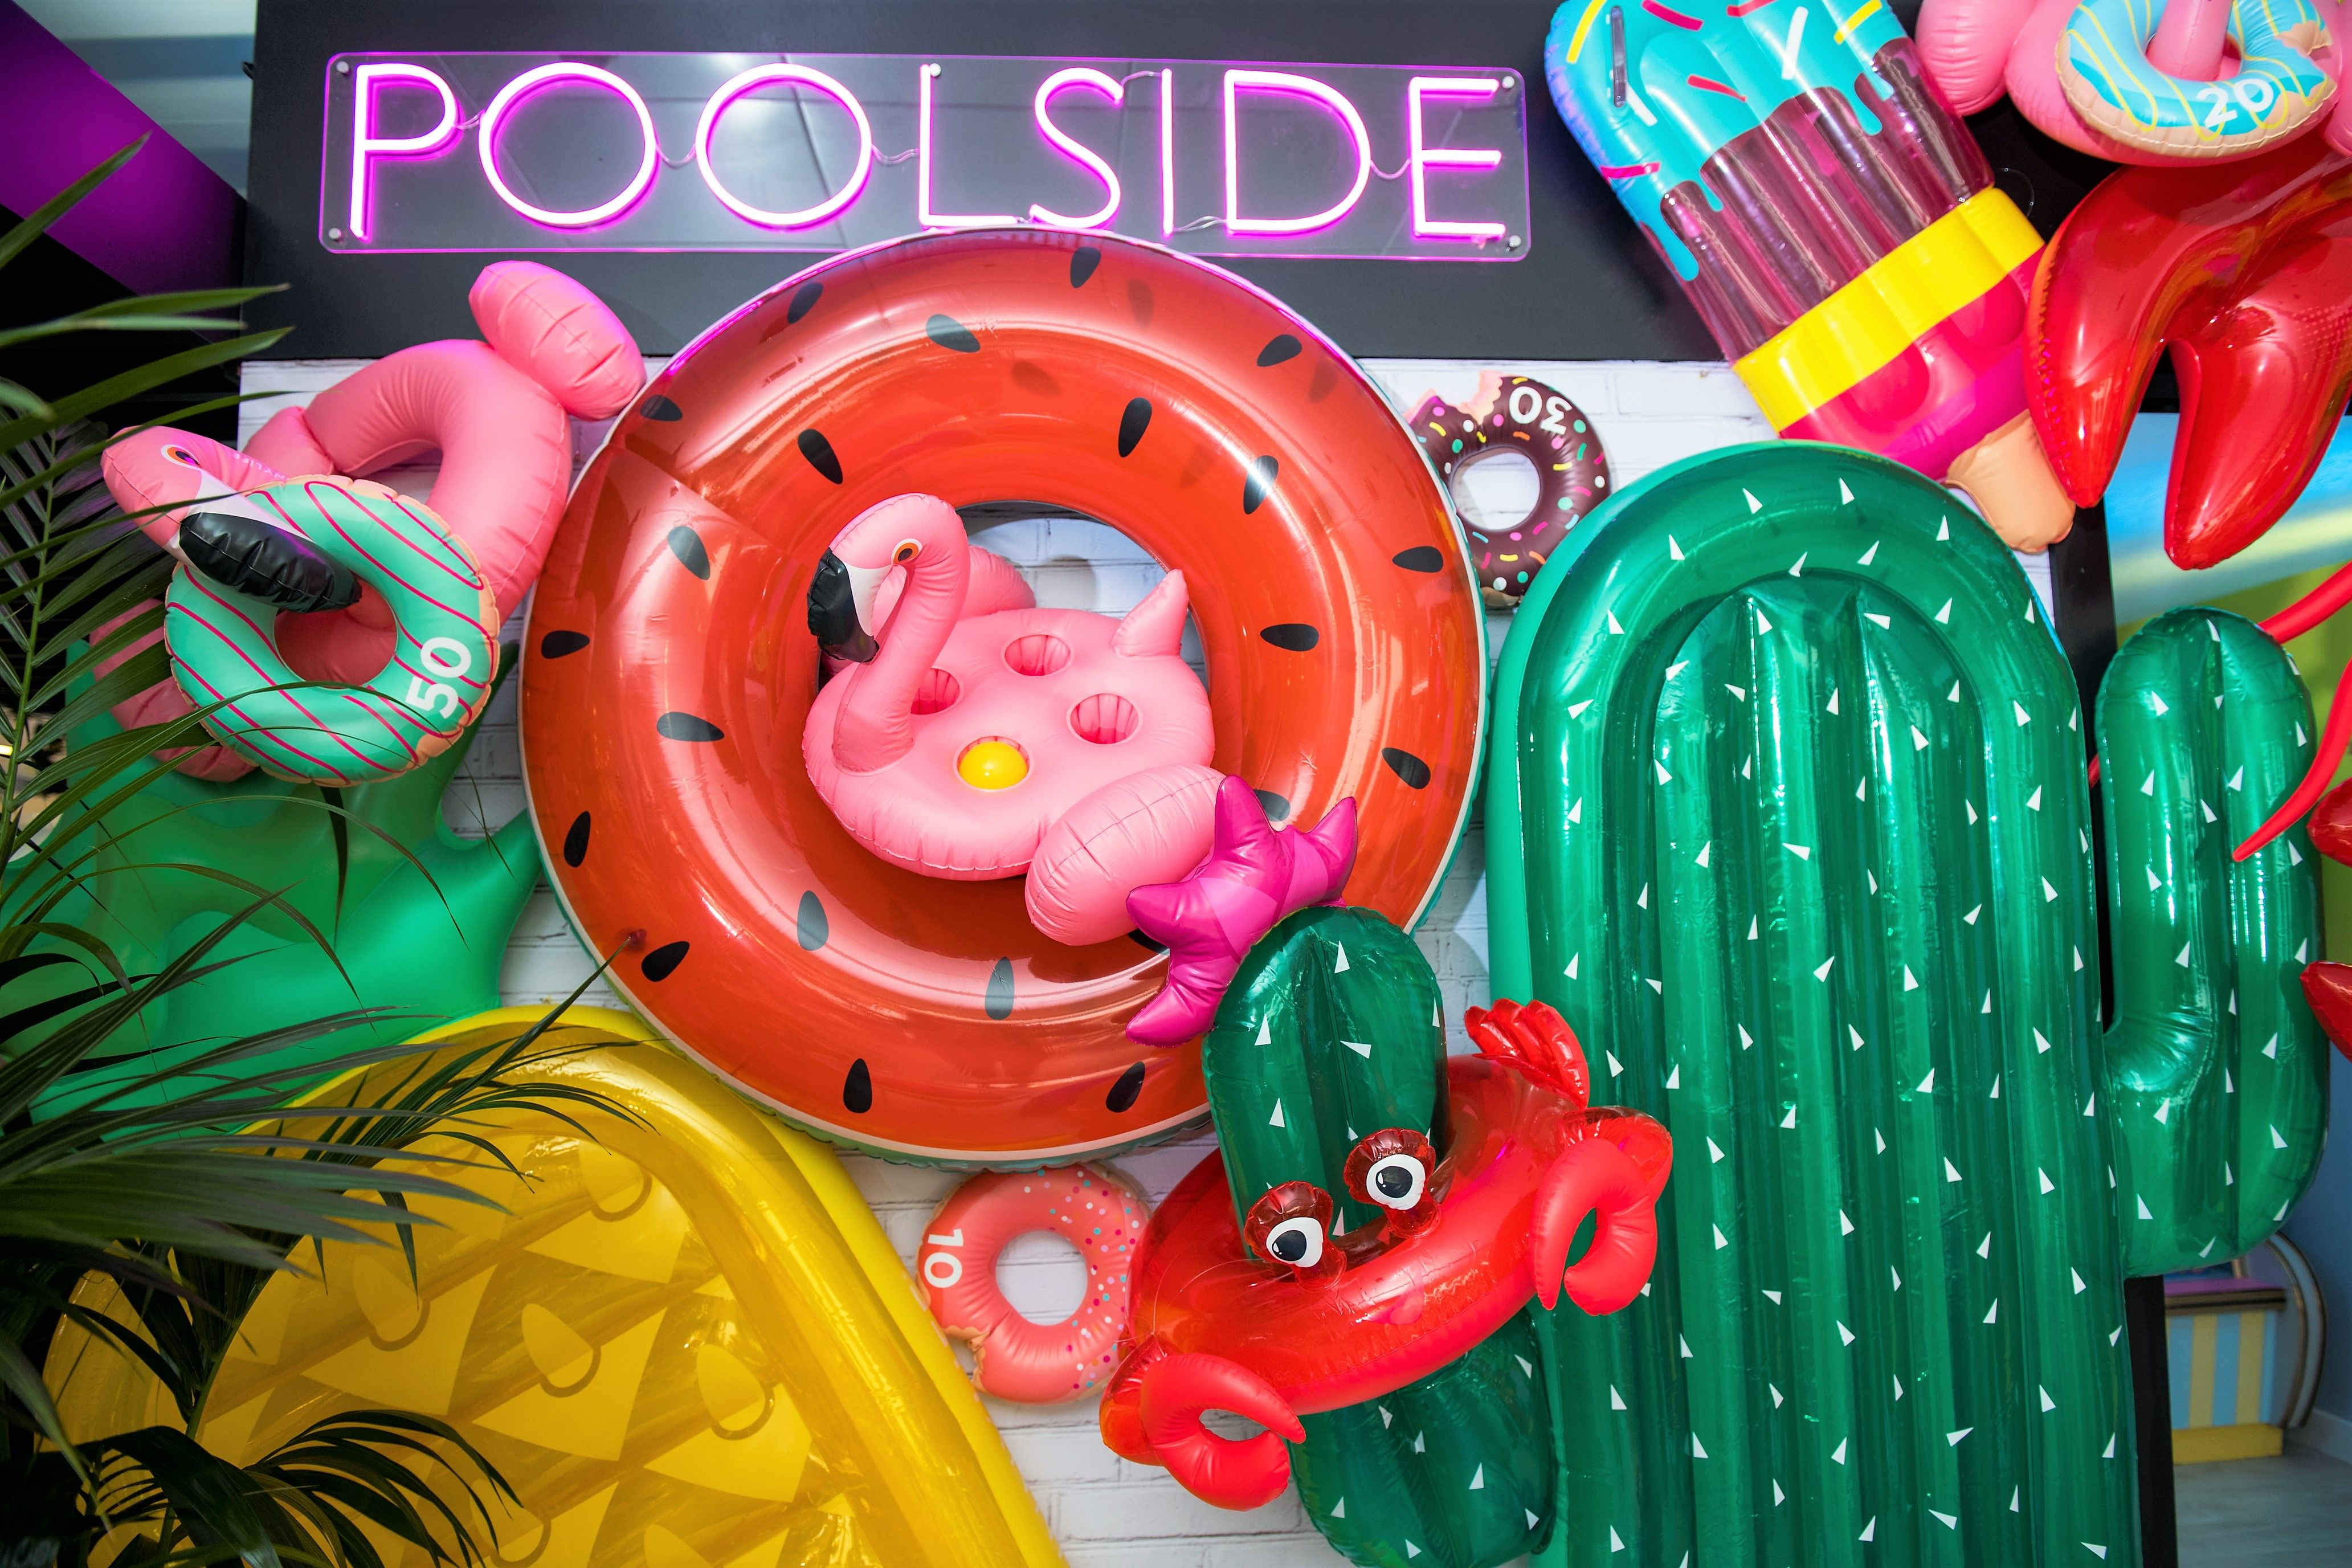 John Lewis And Sunnylife Launch Poolside Pop Up At London Oxford Street